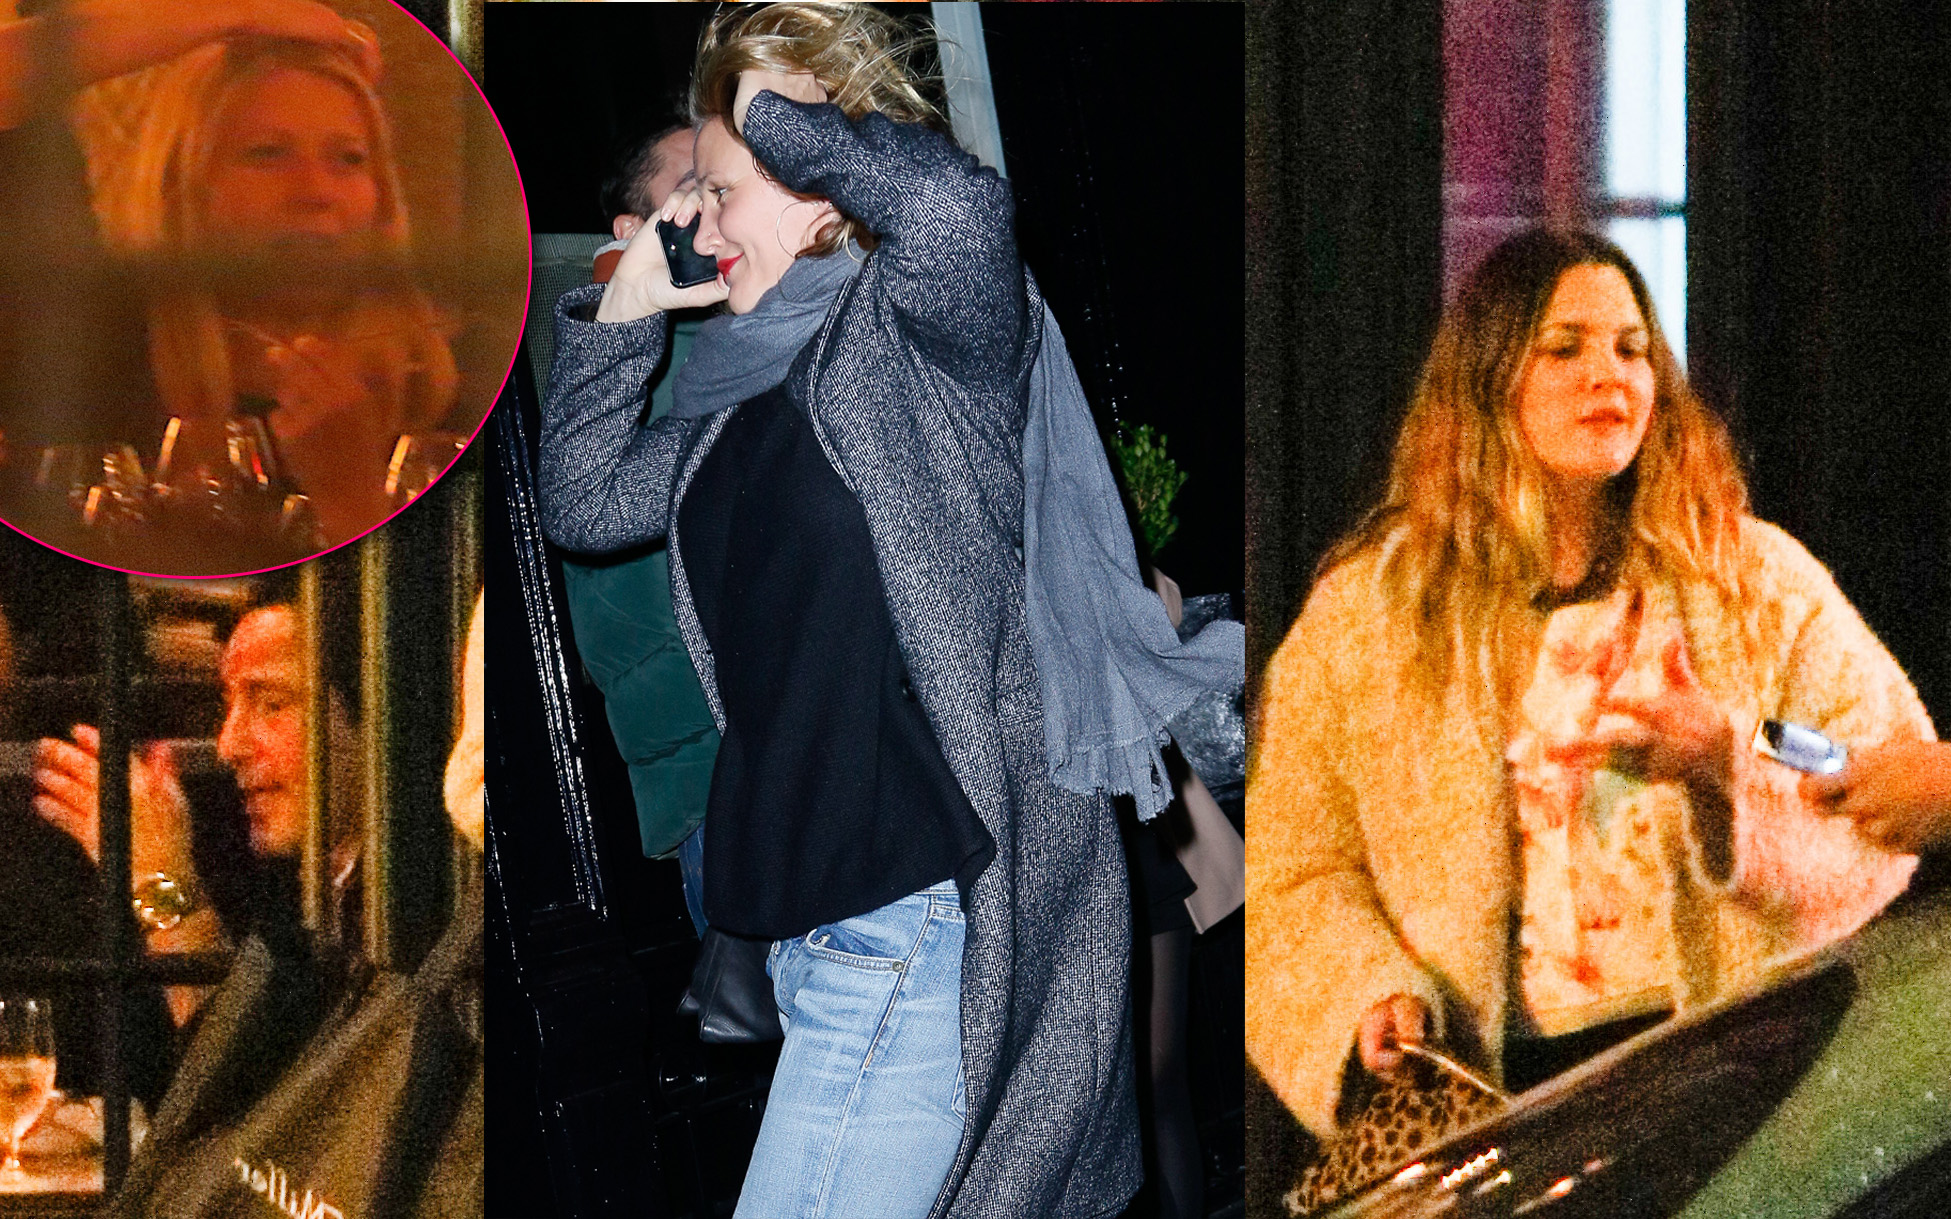 EXCLUSIVE Gwyneth Paltrow Cameron Diaz and Drew Barrymore are seen out and about for  sc 1 st  Star Magazine & Girls Gone Wild! Gwyneth Paltrow Cameron Diaz u0026 Drew Barrymore ...